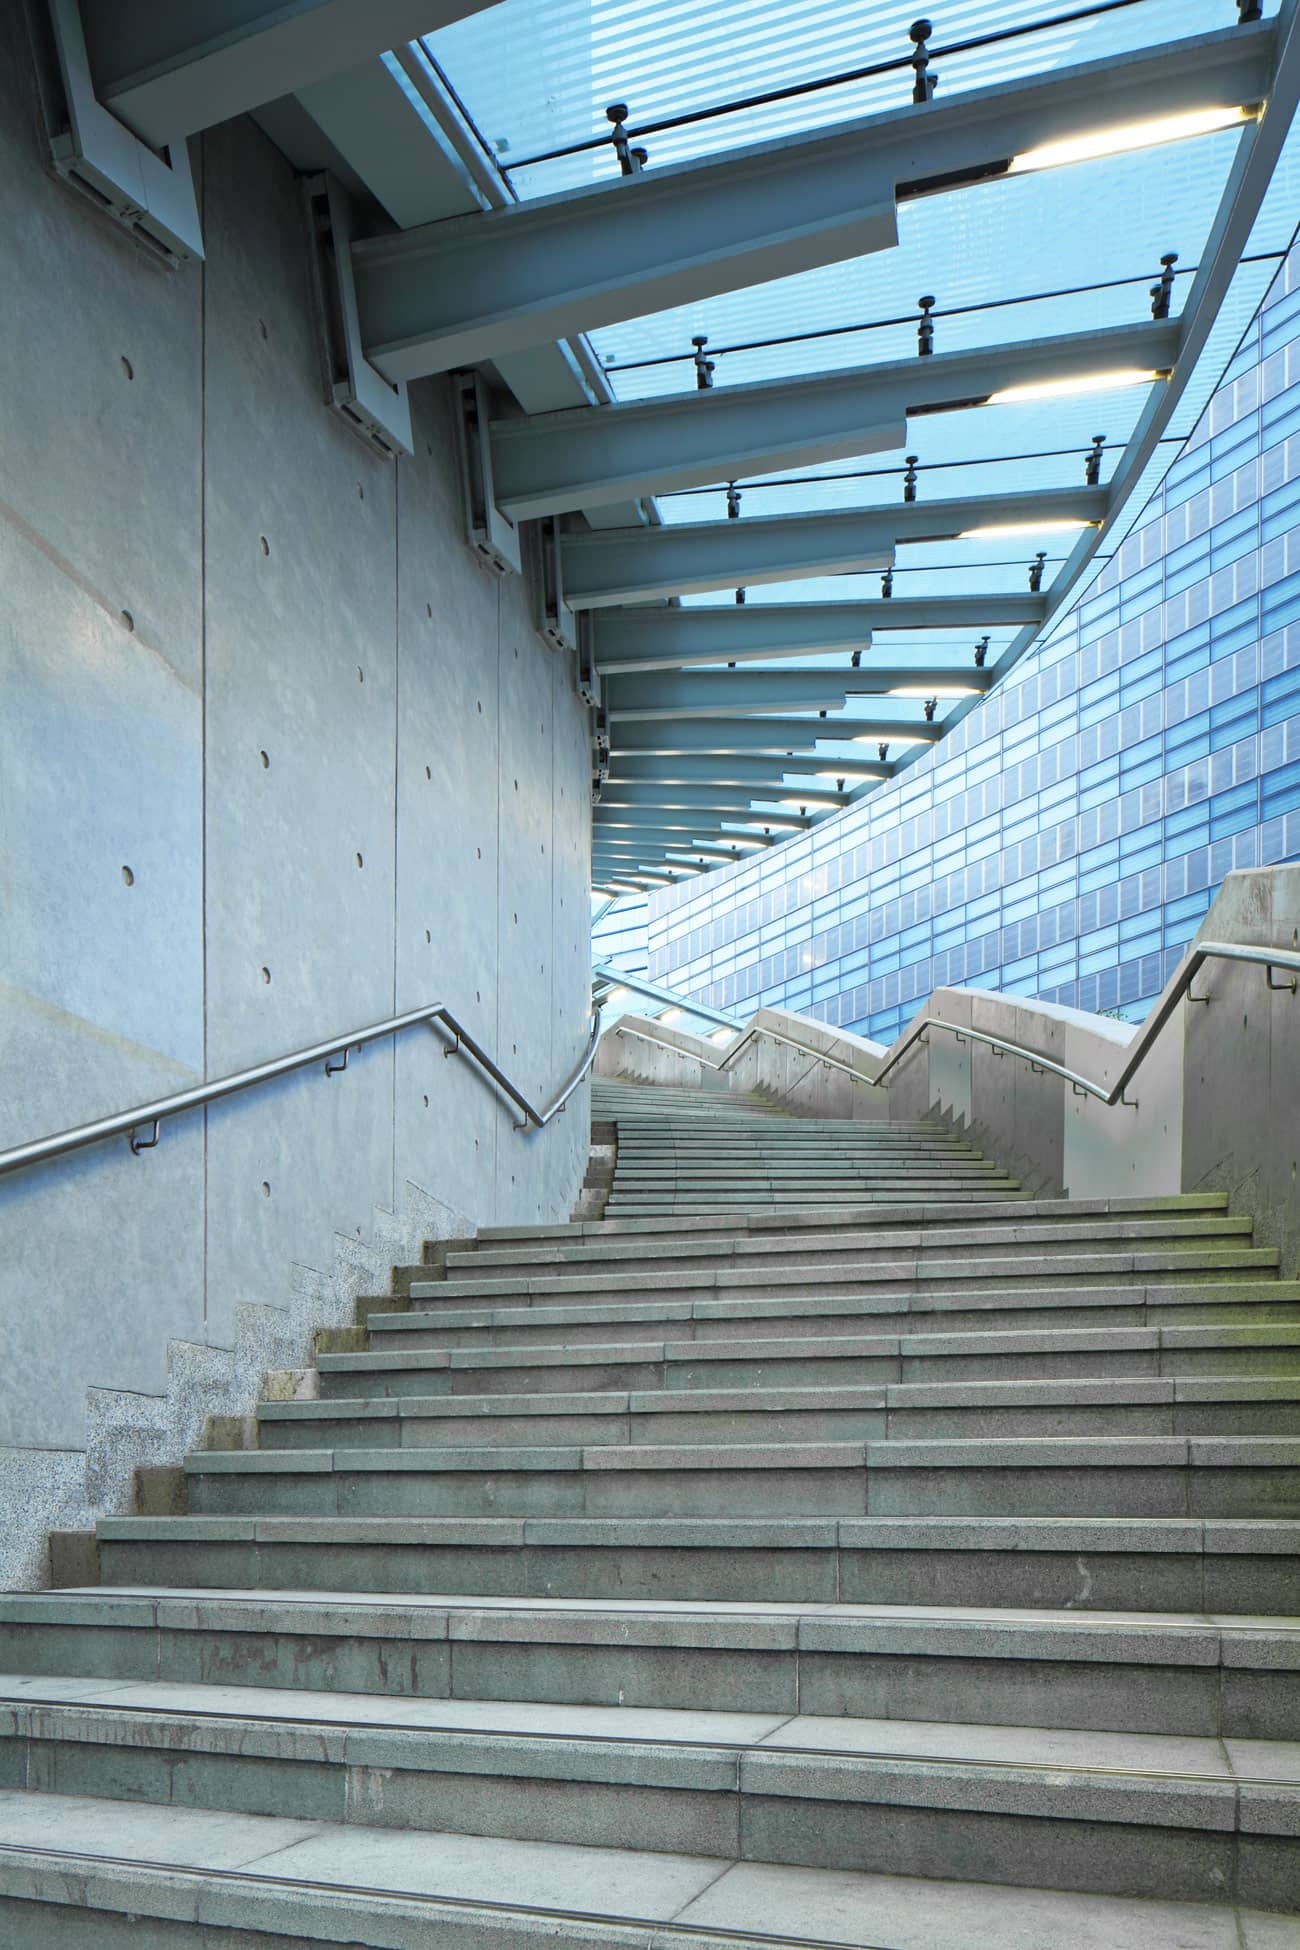 BC Modern Stairs and Glass, Stainless Steel Railings